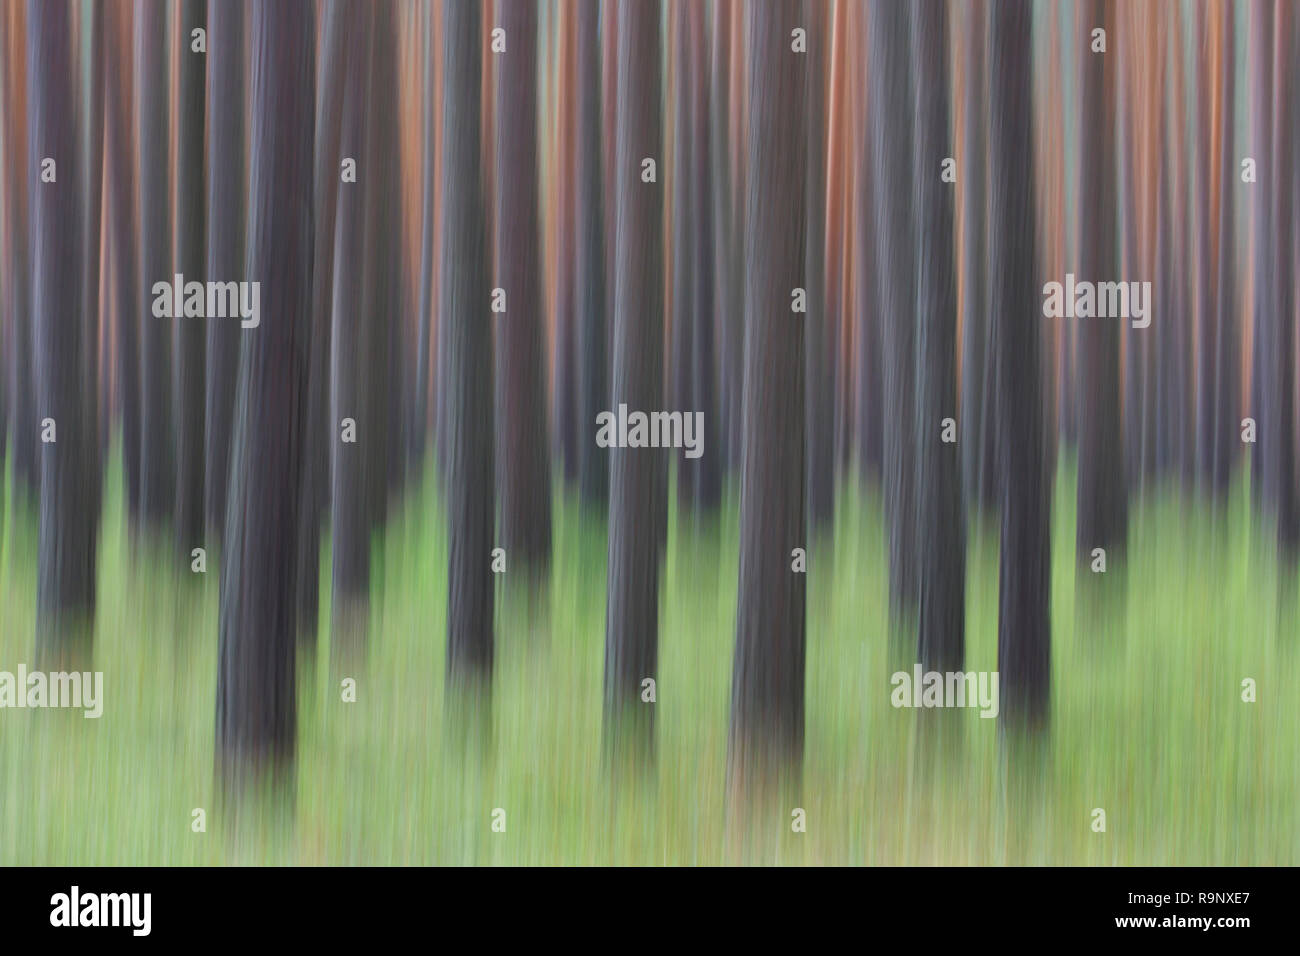 Abstract image of motion blurred Scots Pine (Pinus sylvestris) tree trunks in coniferous forest - Stock Image